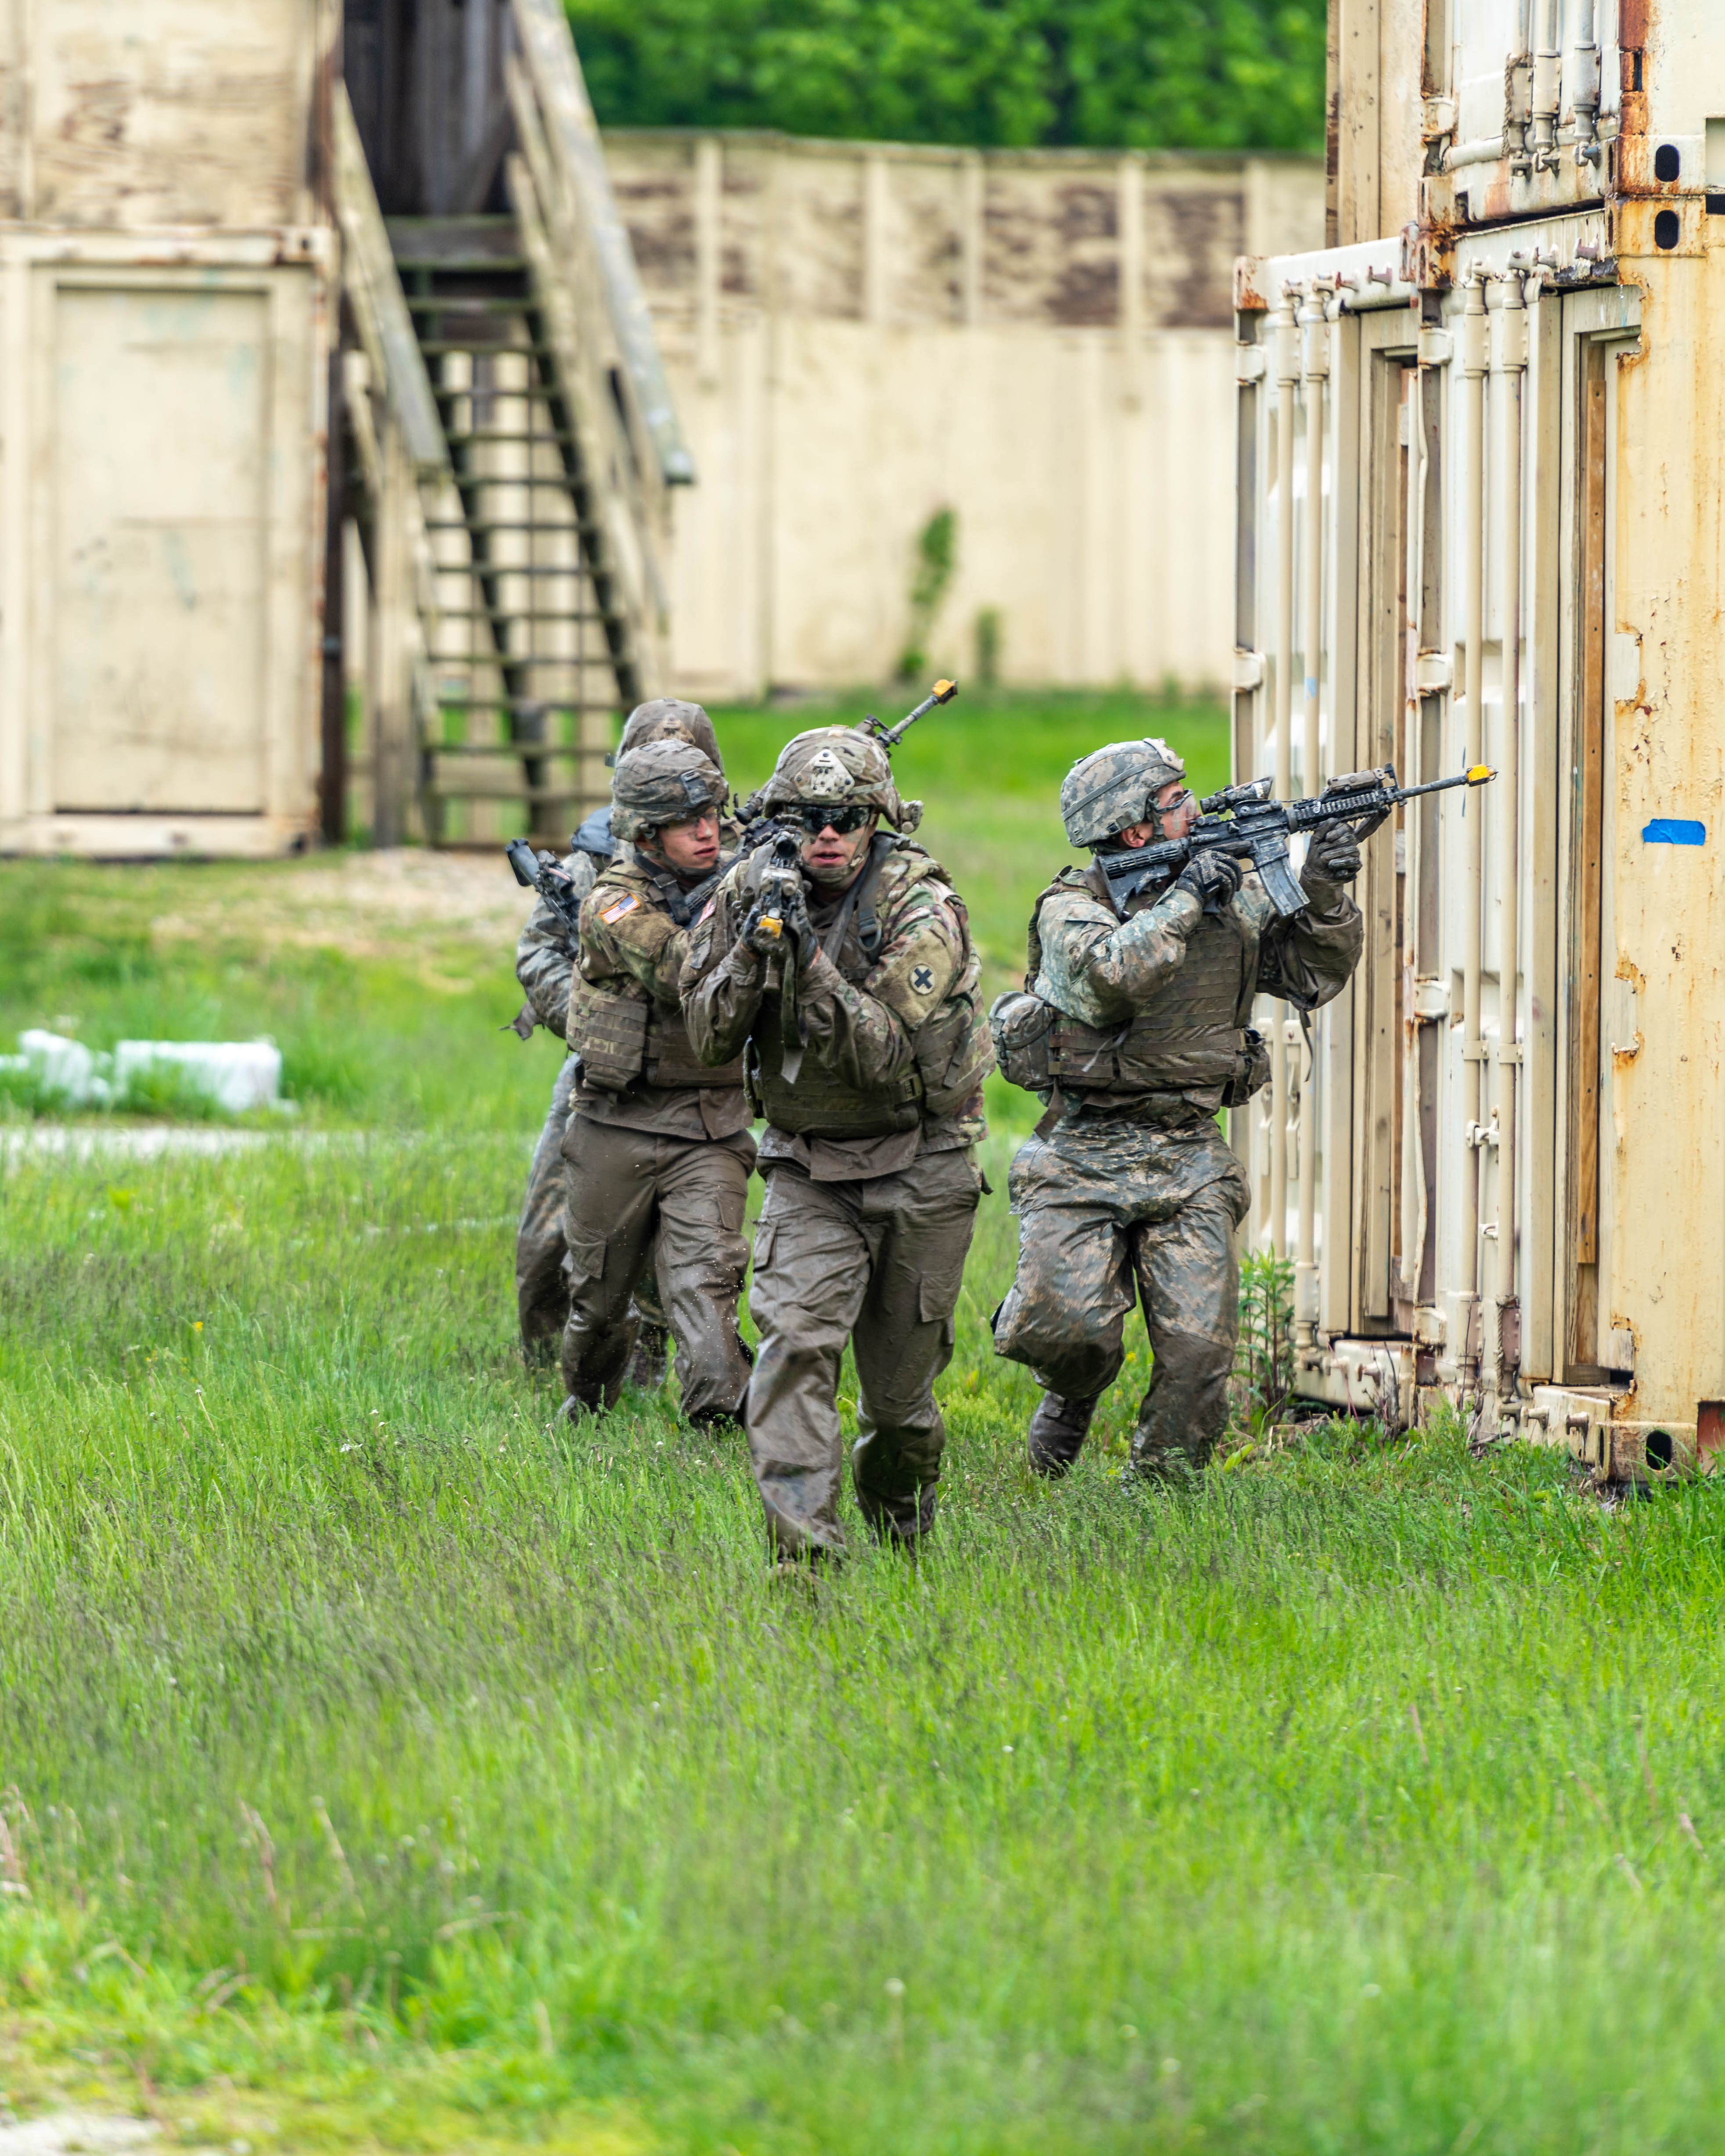 Soldiers practice movement drills ahead of summer deployment